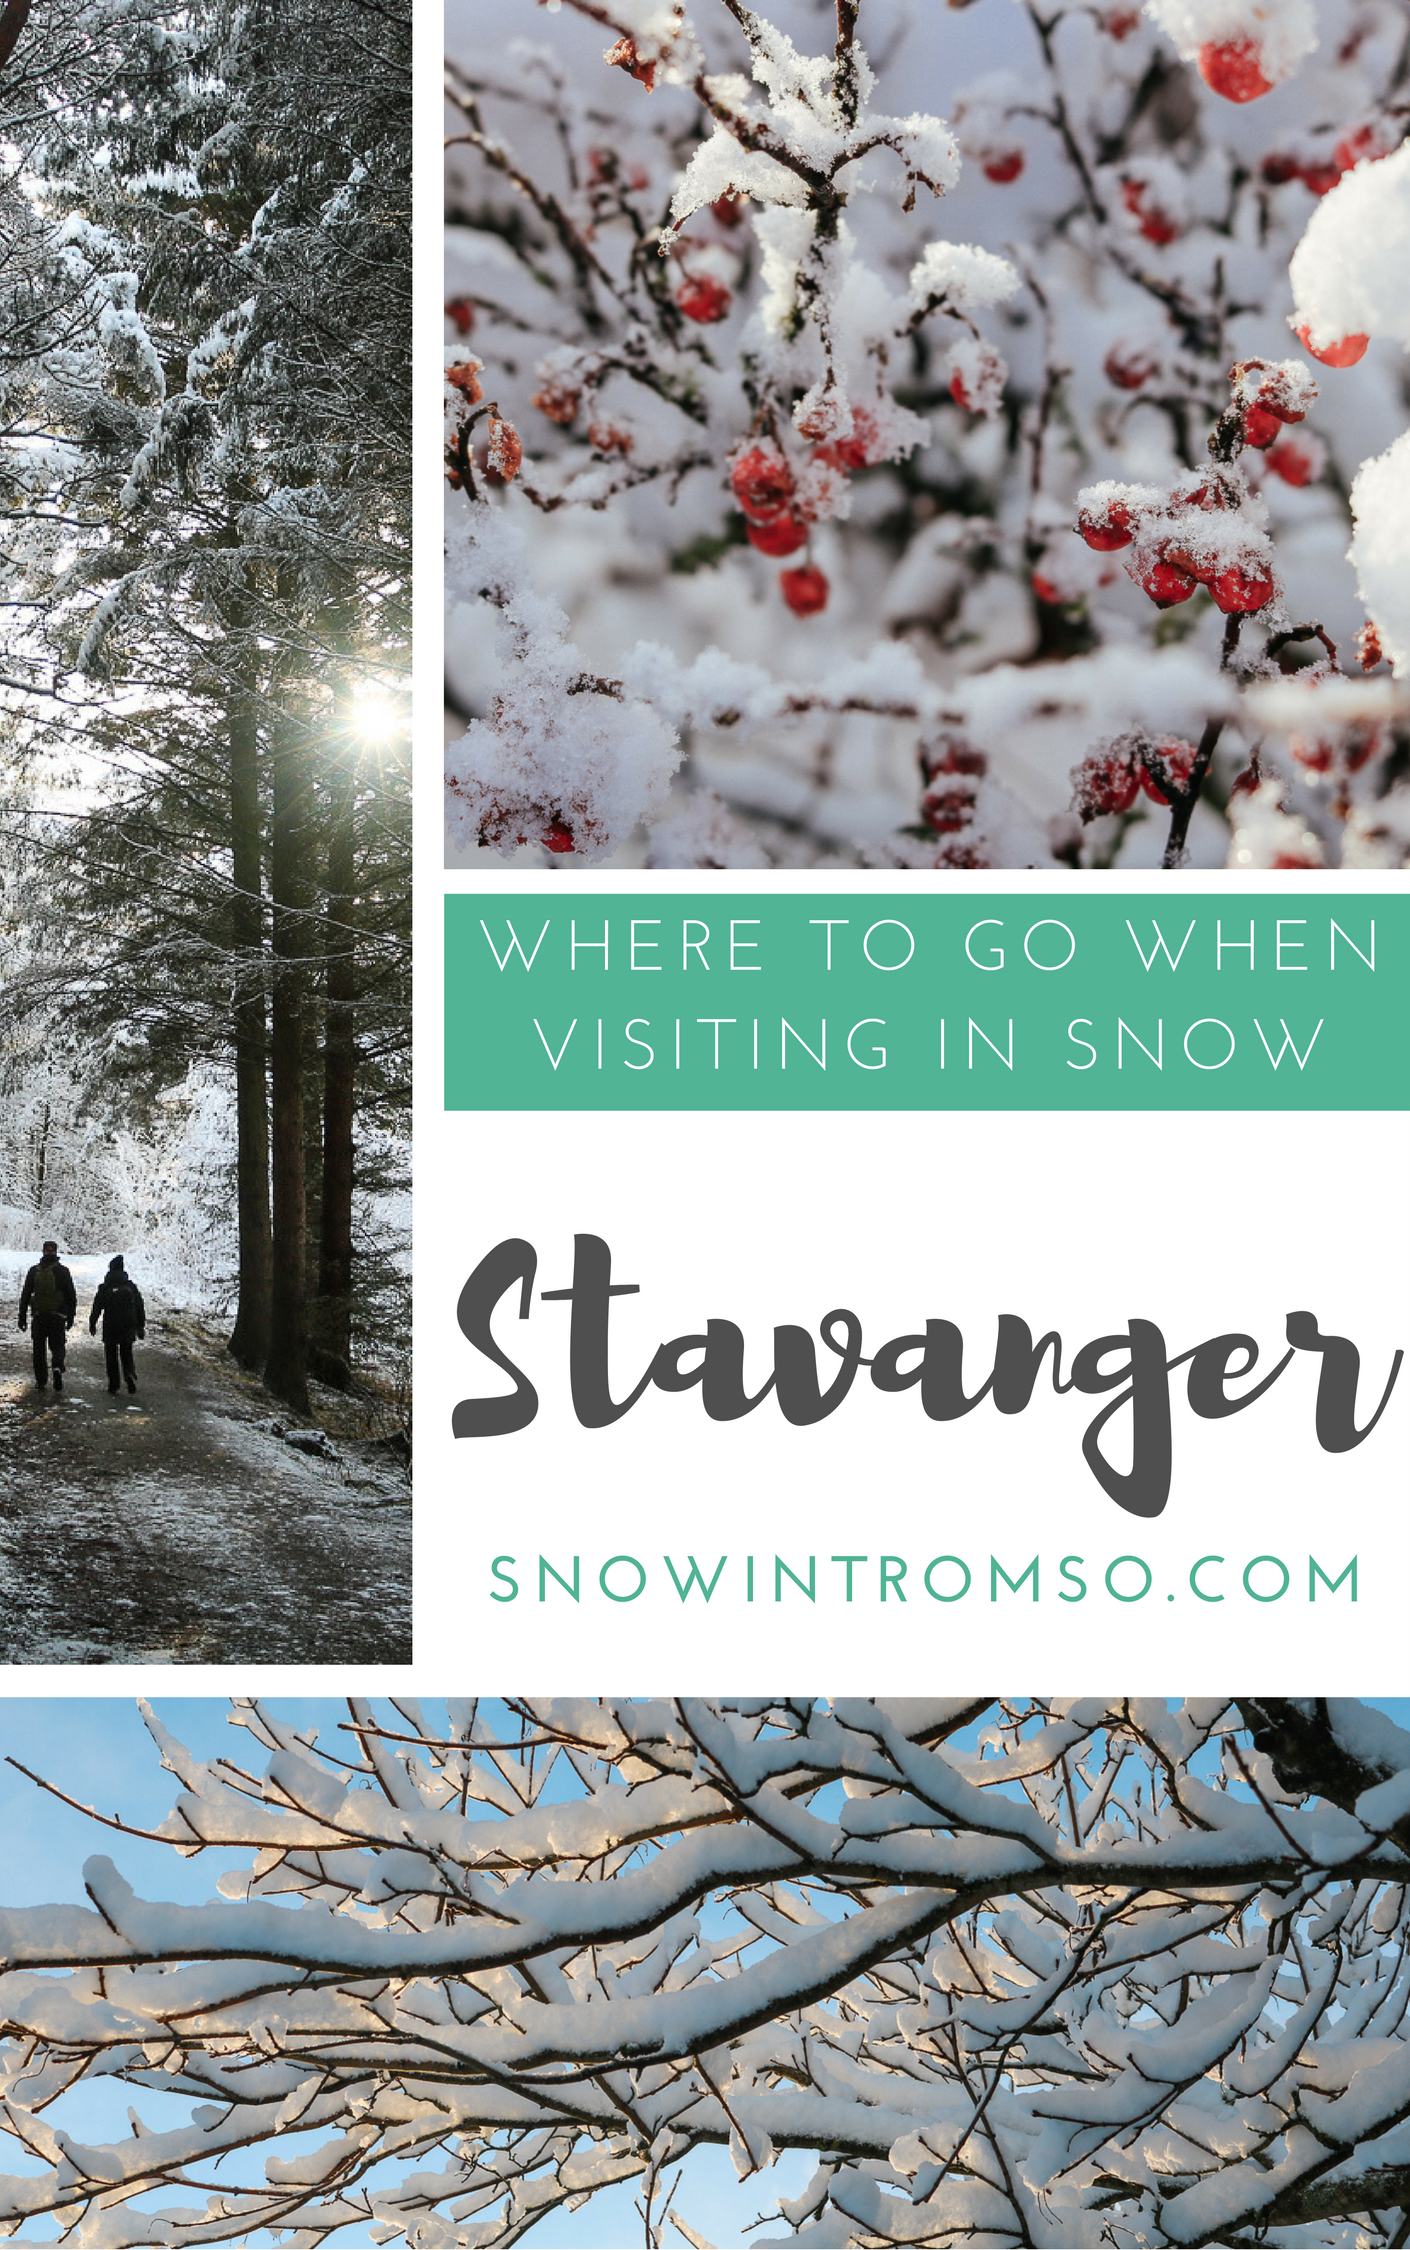 It doesn't ALWAYS rain in Stavanger! Sometimes it actually snows - and this is what it looks like and where you get to enjoy it most!